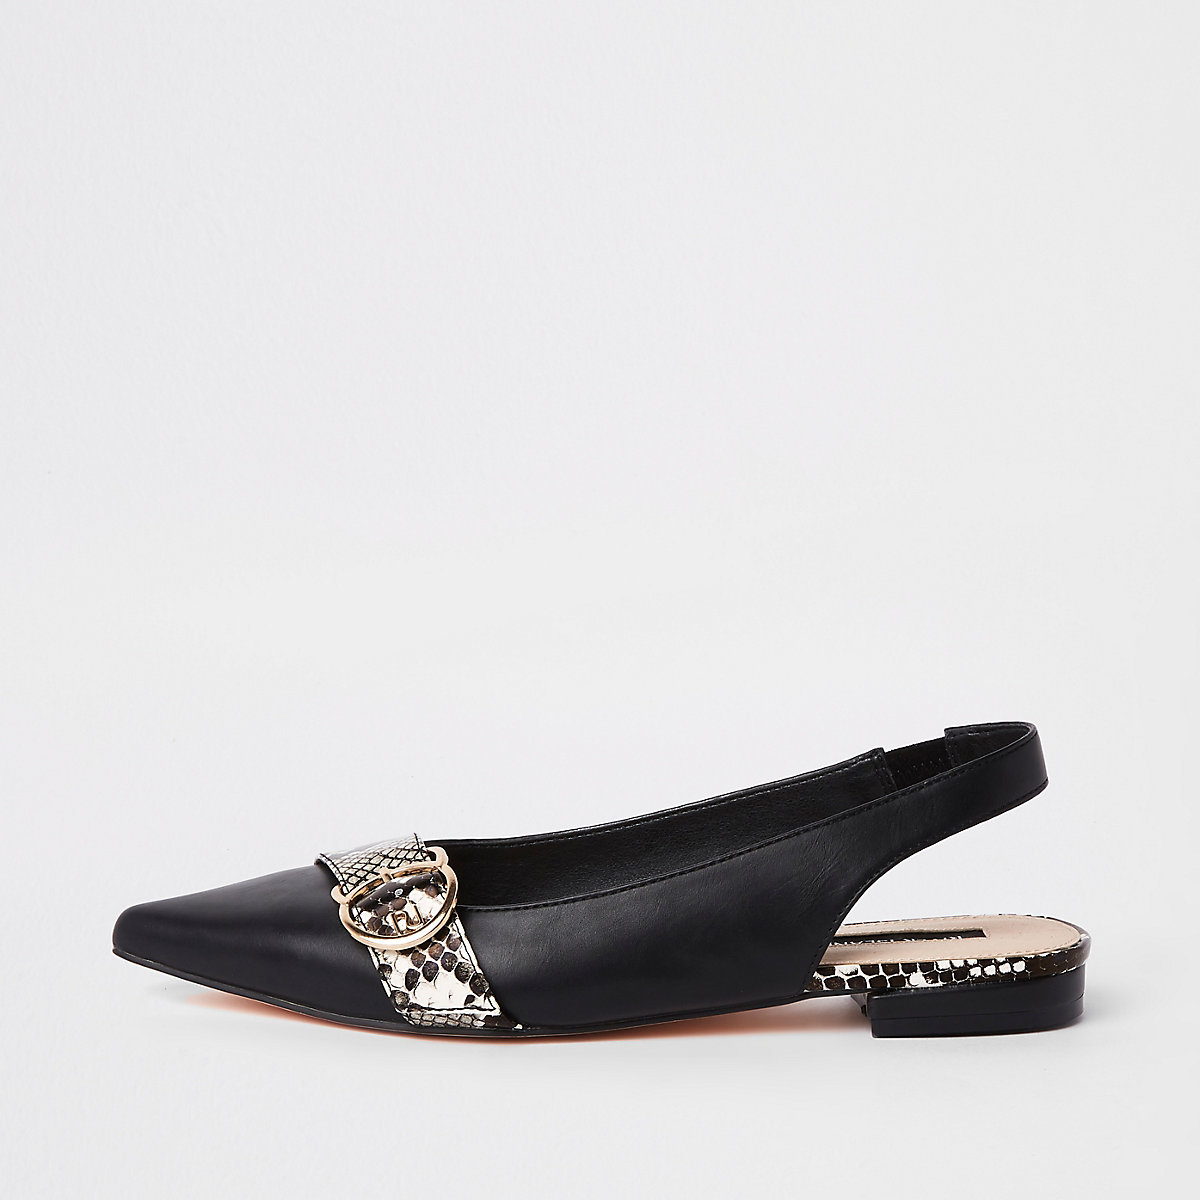 Black pointed toe sling back loafers